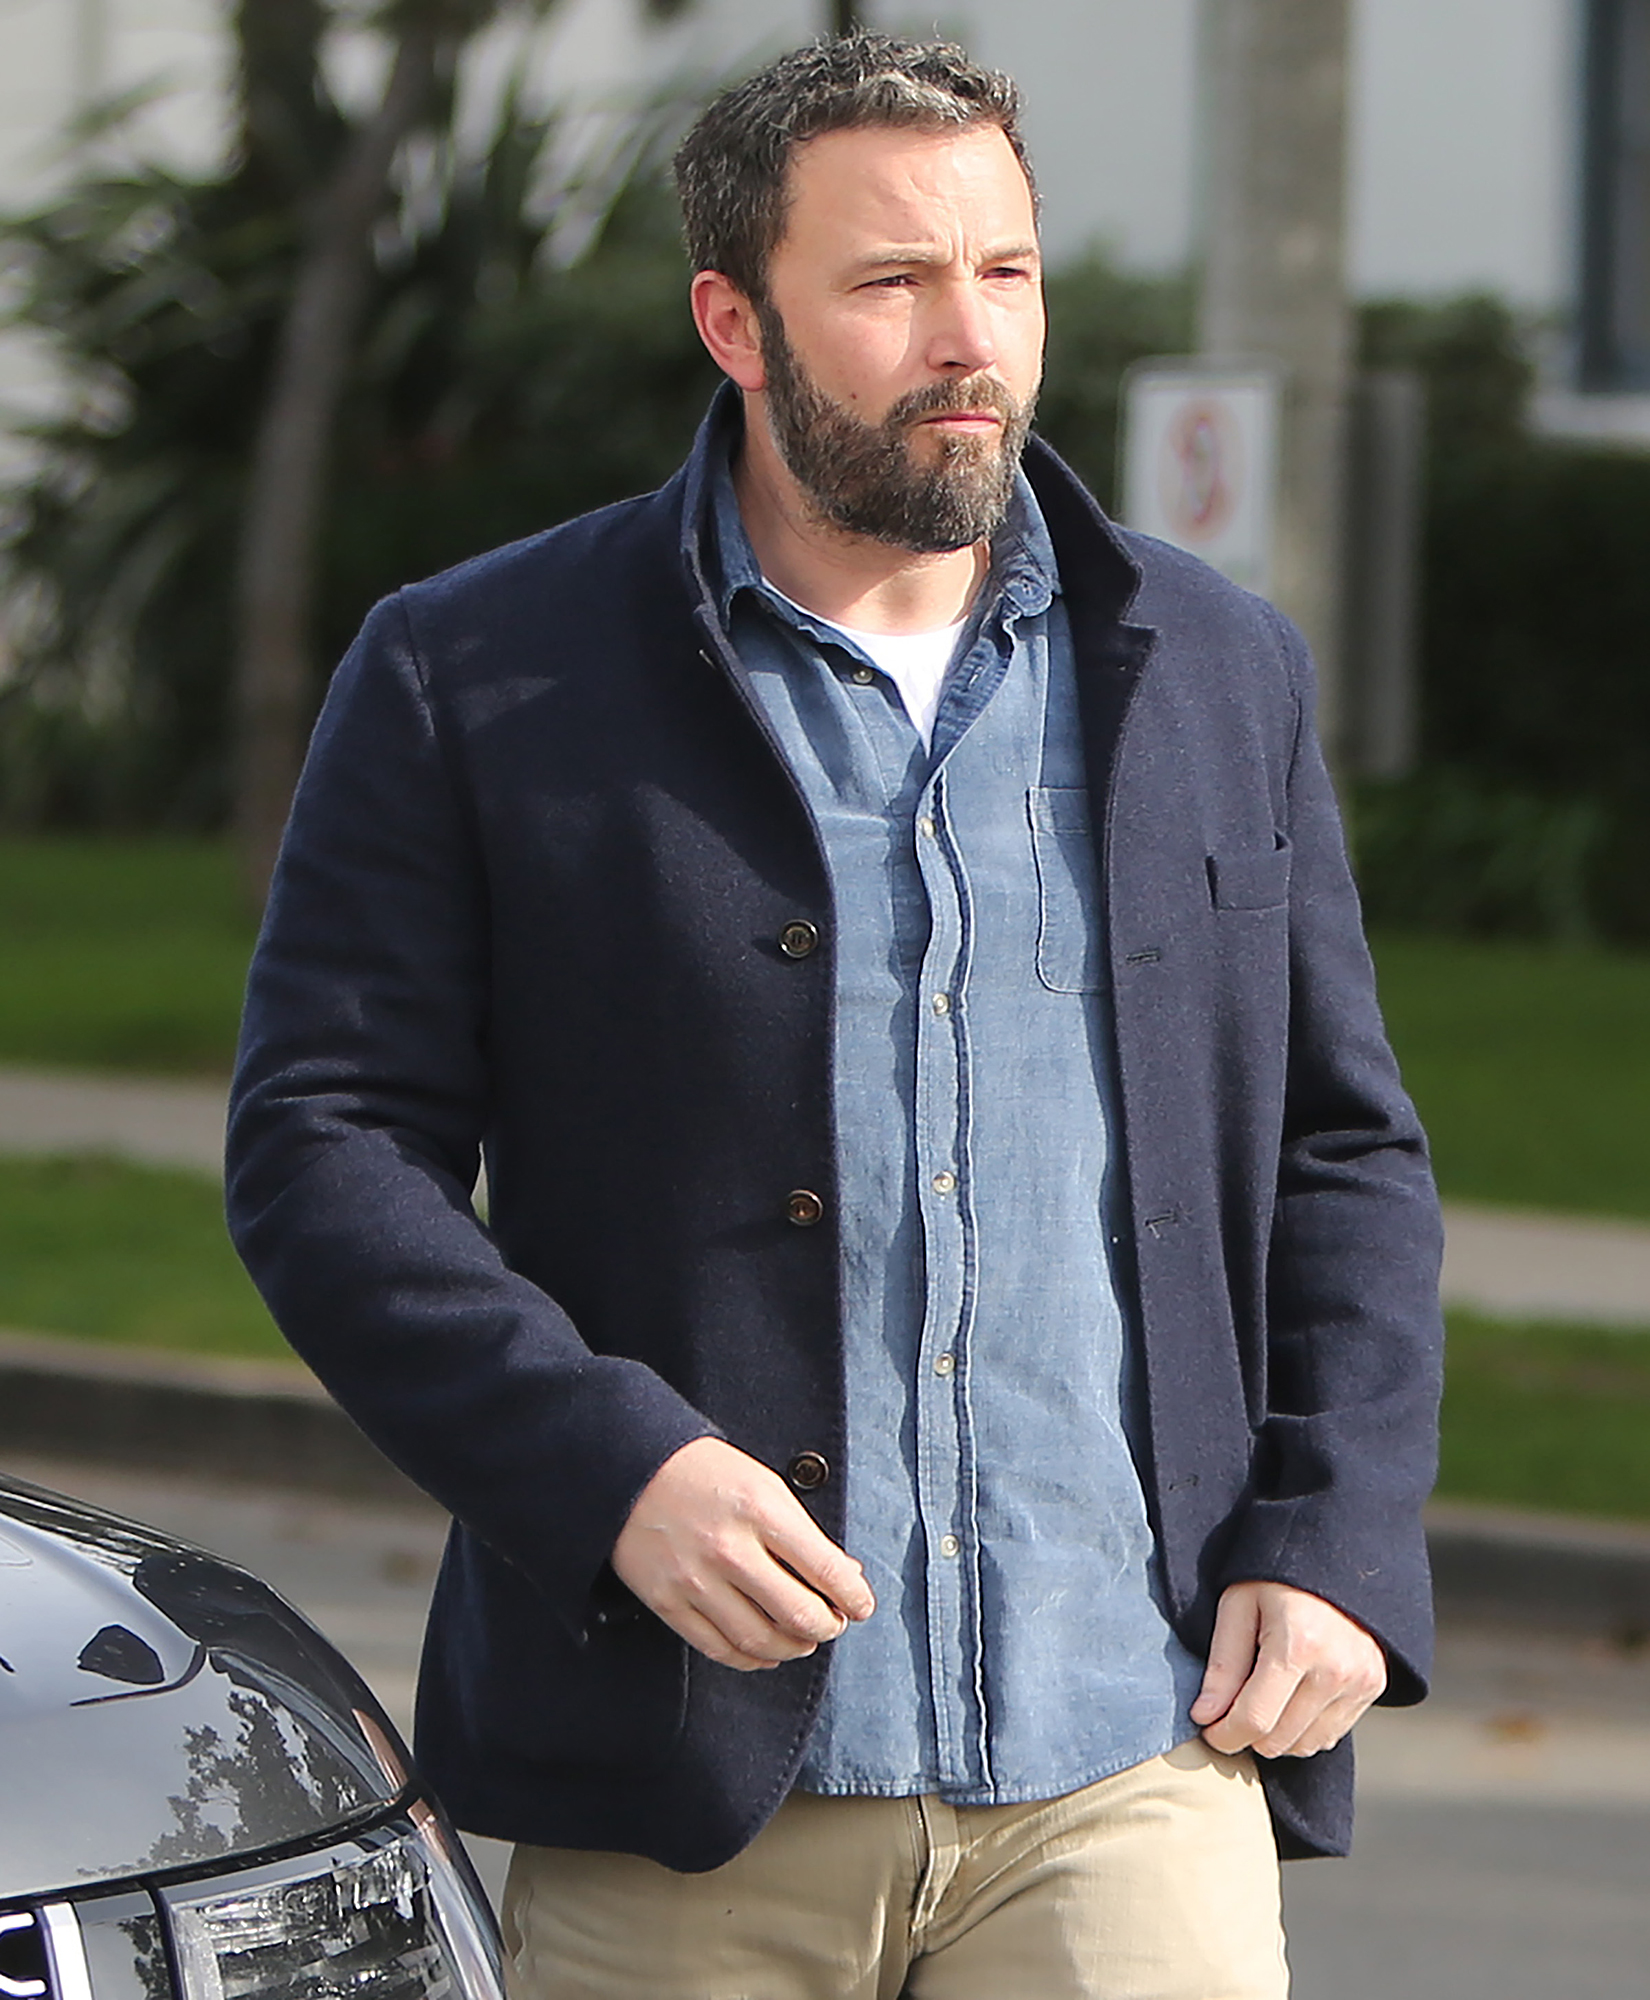 Ben Affleck and Jennifer Garner Reunite for Family Church Outing 2 Months After Finalizing Divorce - For his part, Affleck dated Saturday Night Live producer Lindsay Shookus for more than a year before they parted ways in August 2018 .